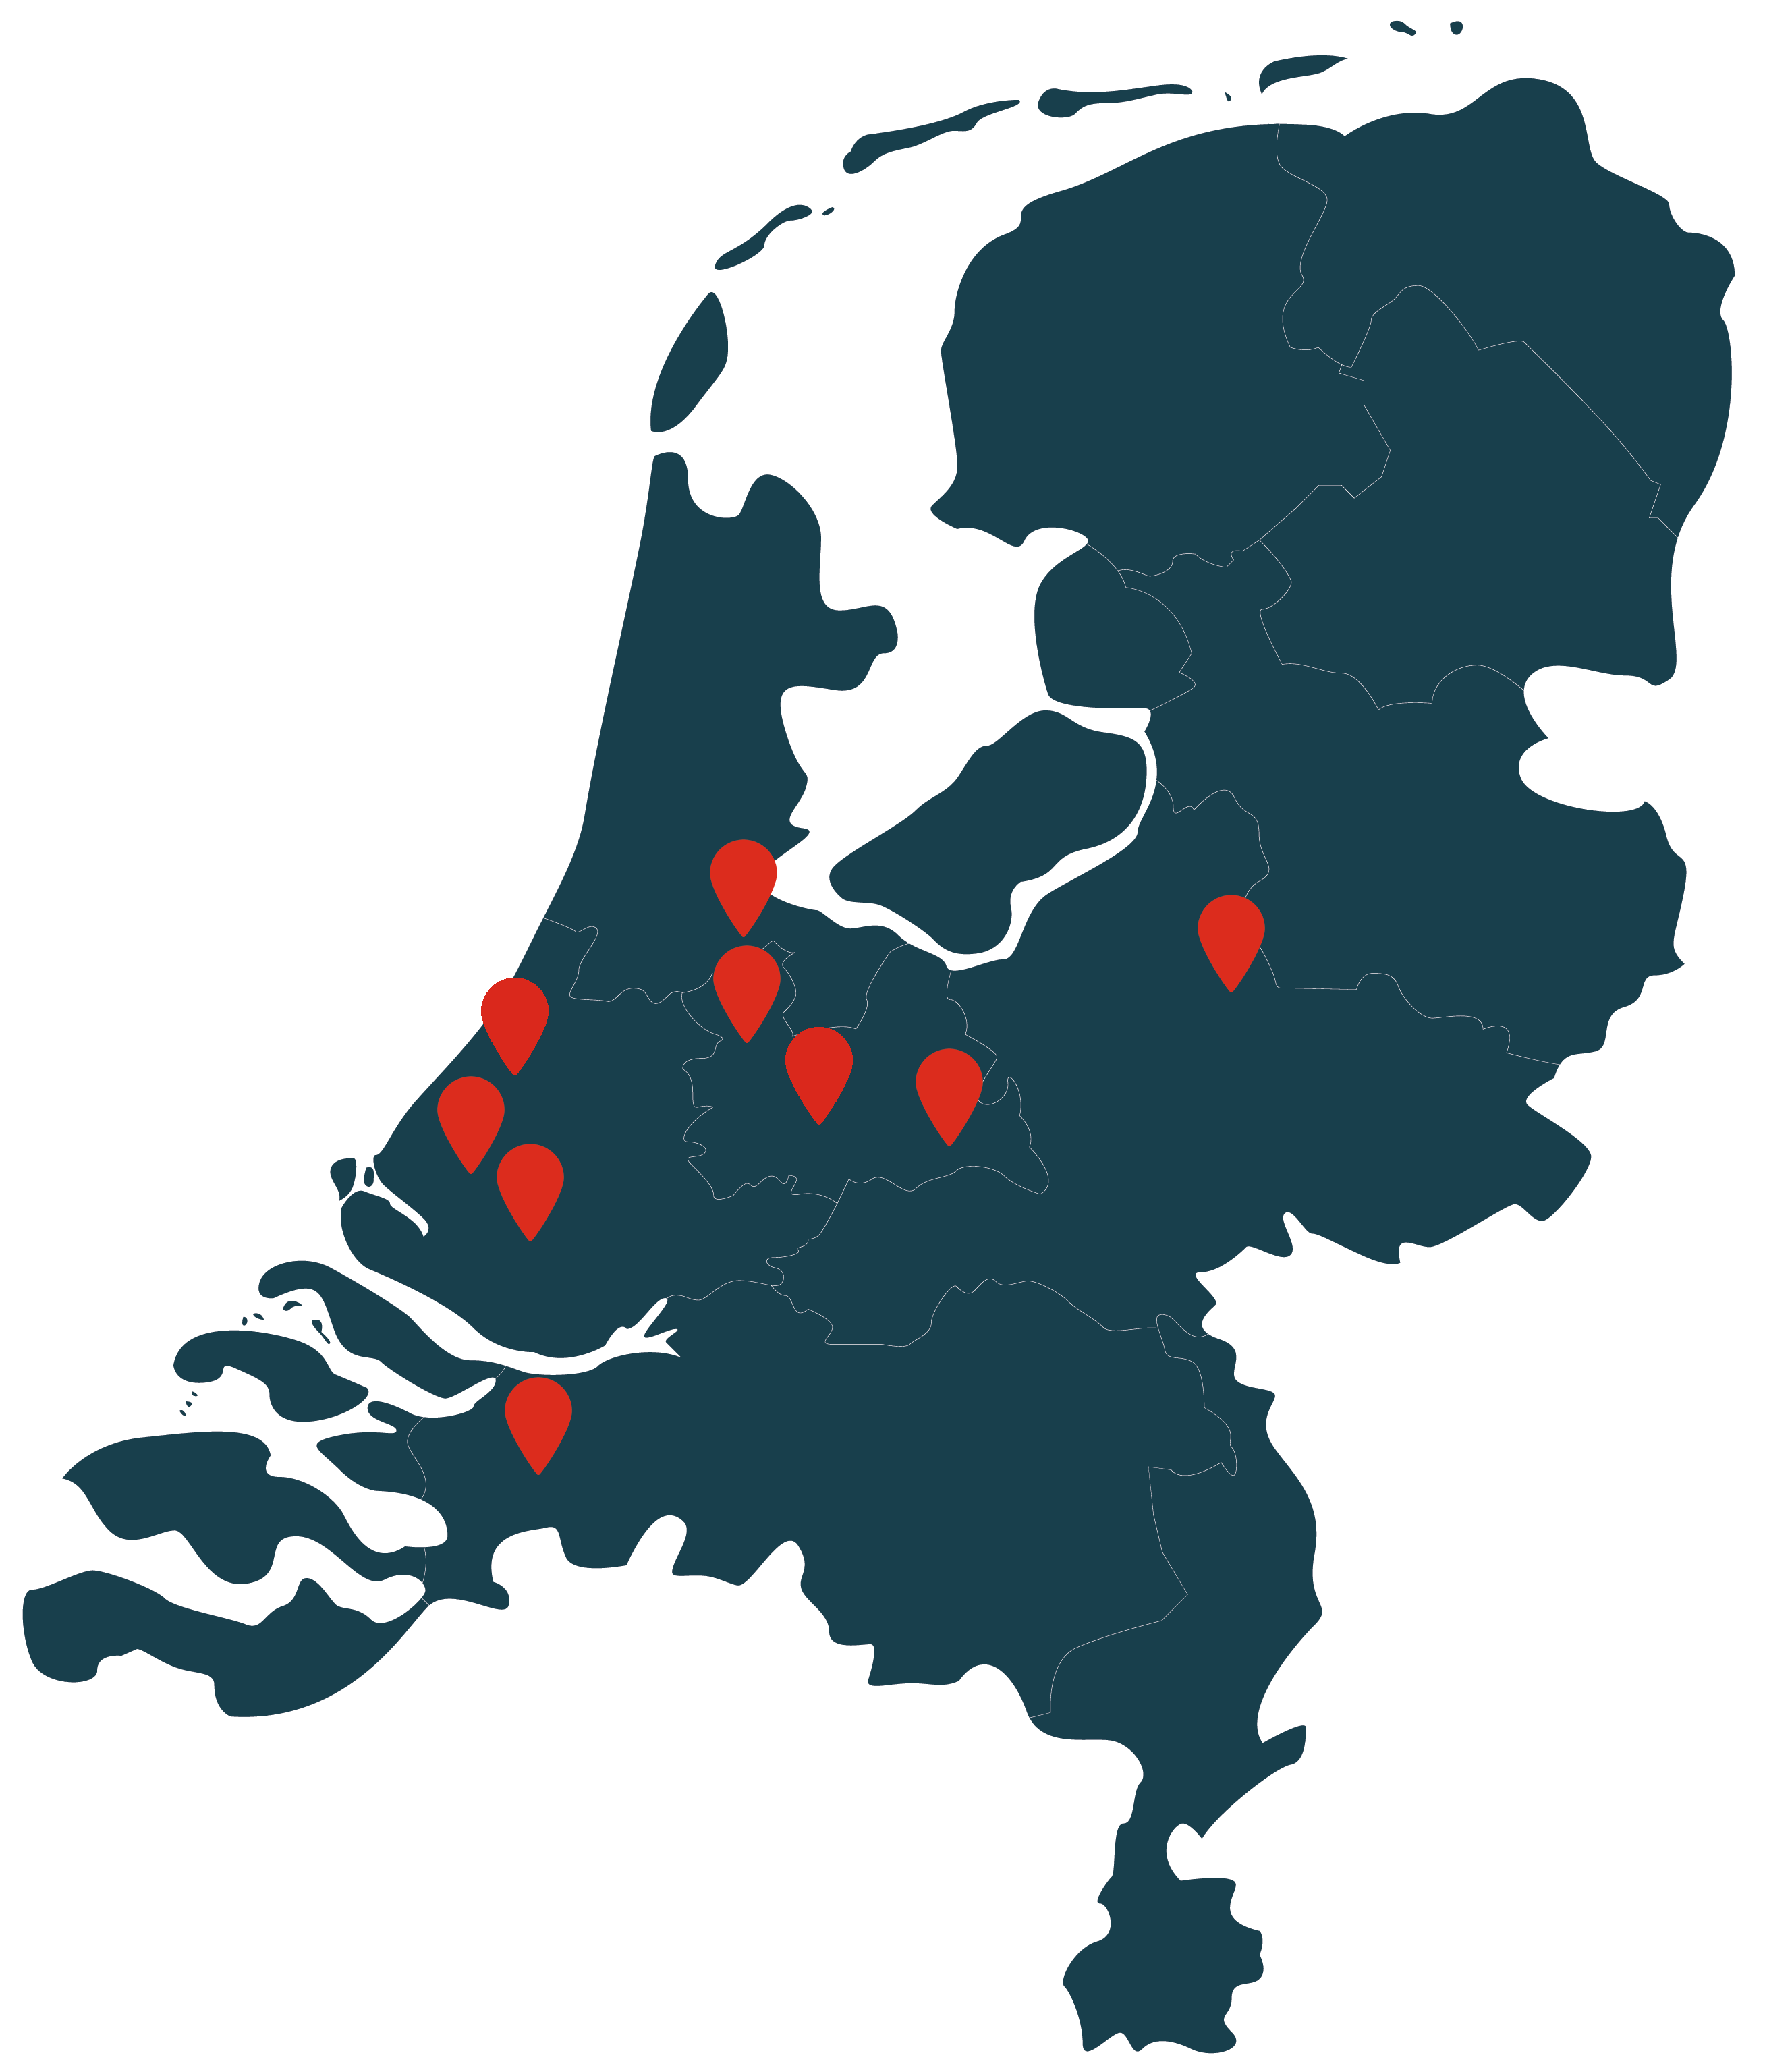 kaart-nederland-locaties-wattcycling-25-oktober